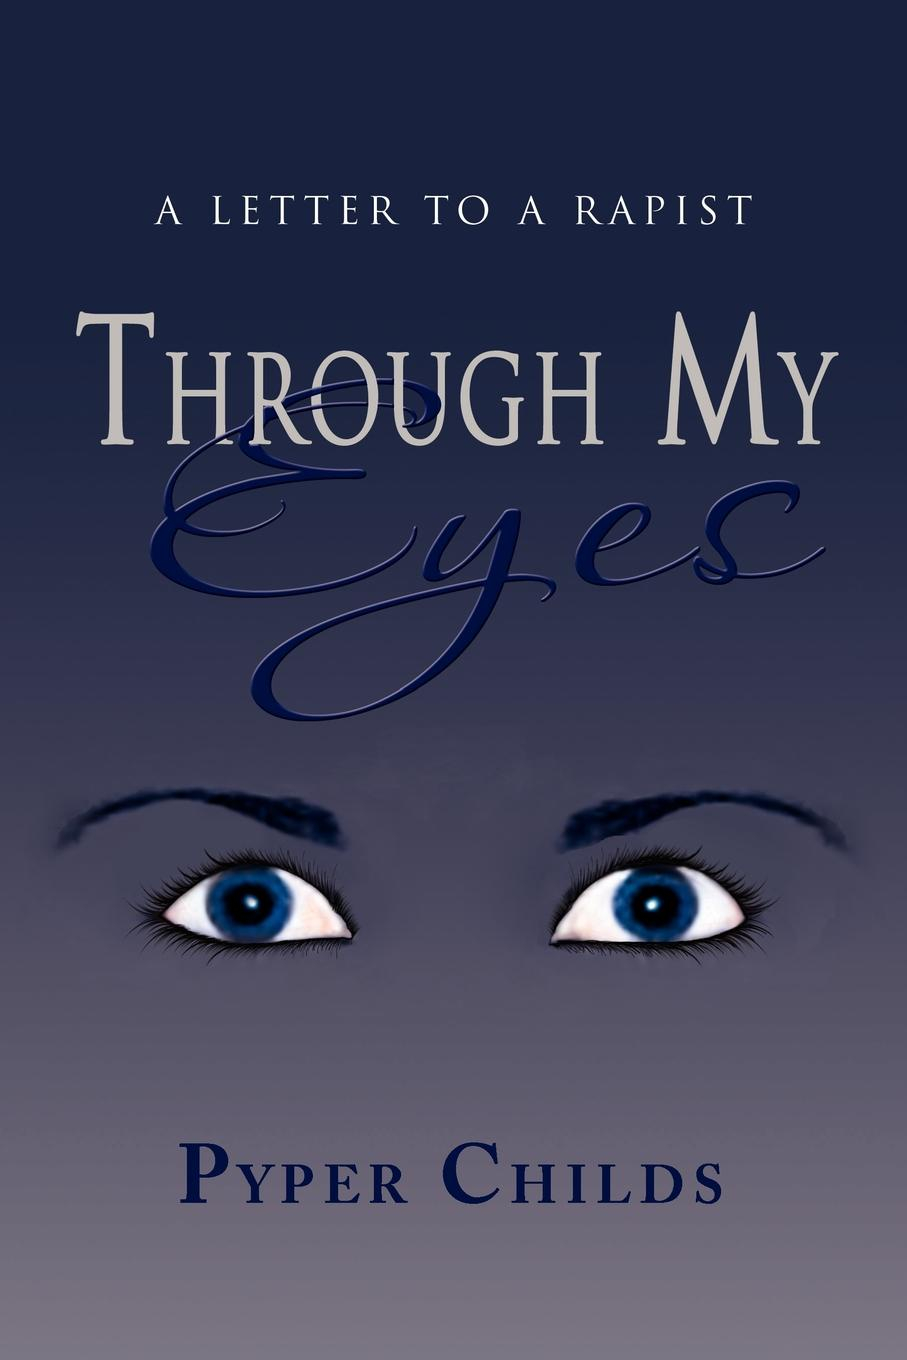 Pyper Childs Through My Eyes. A Letter to a Rapist dustina respecki living in fear away from my rapist